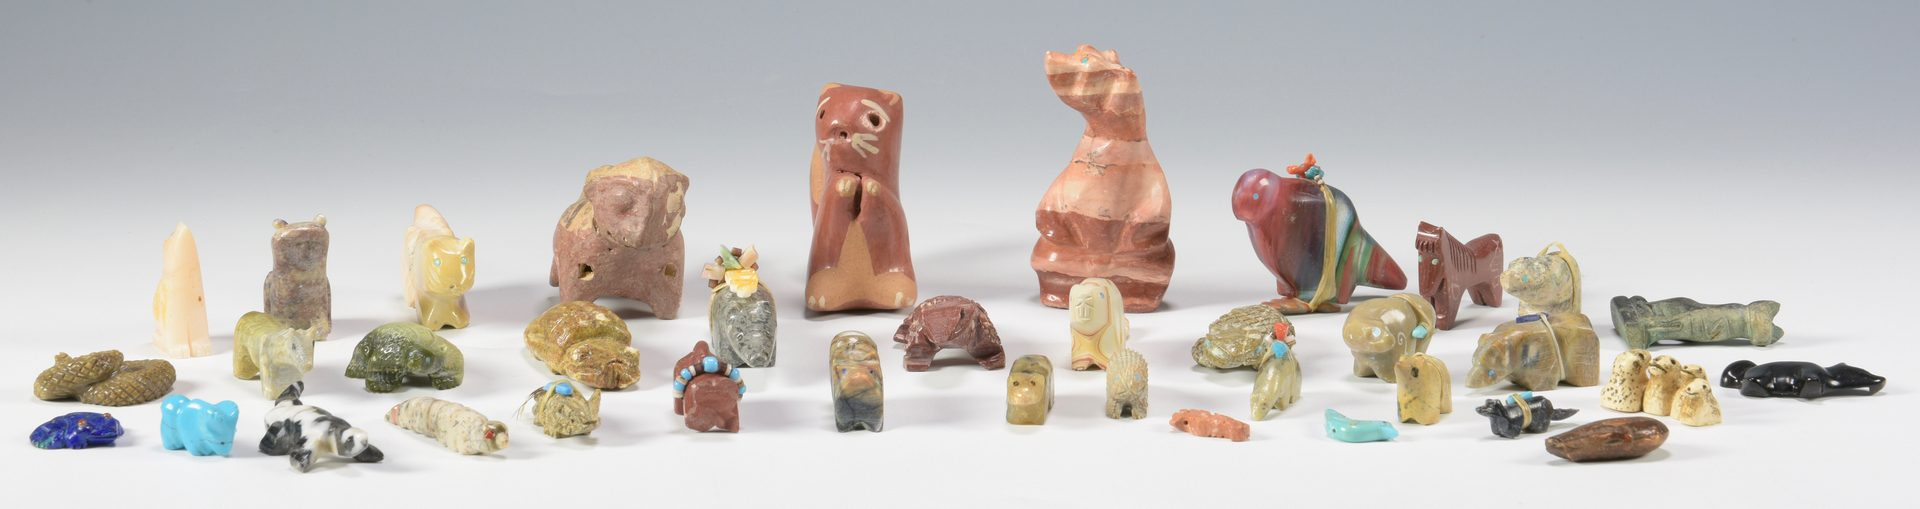 Lot 625: 40 Stone and Ceramic Fetishes, Native American